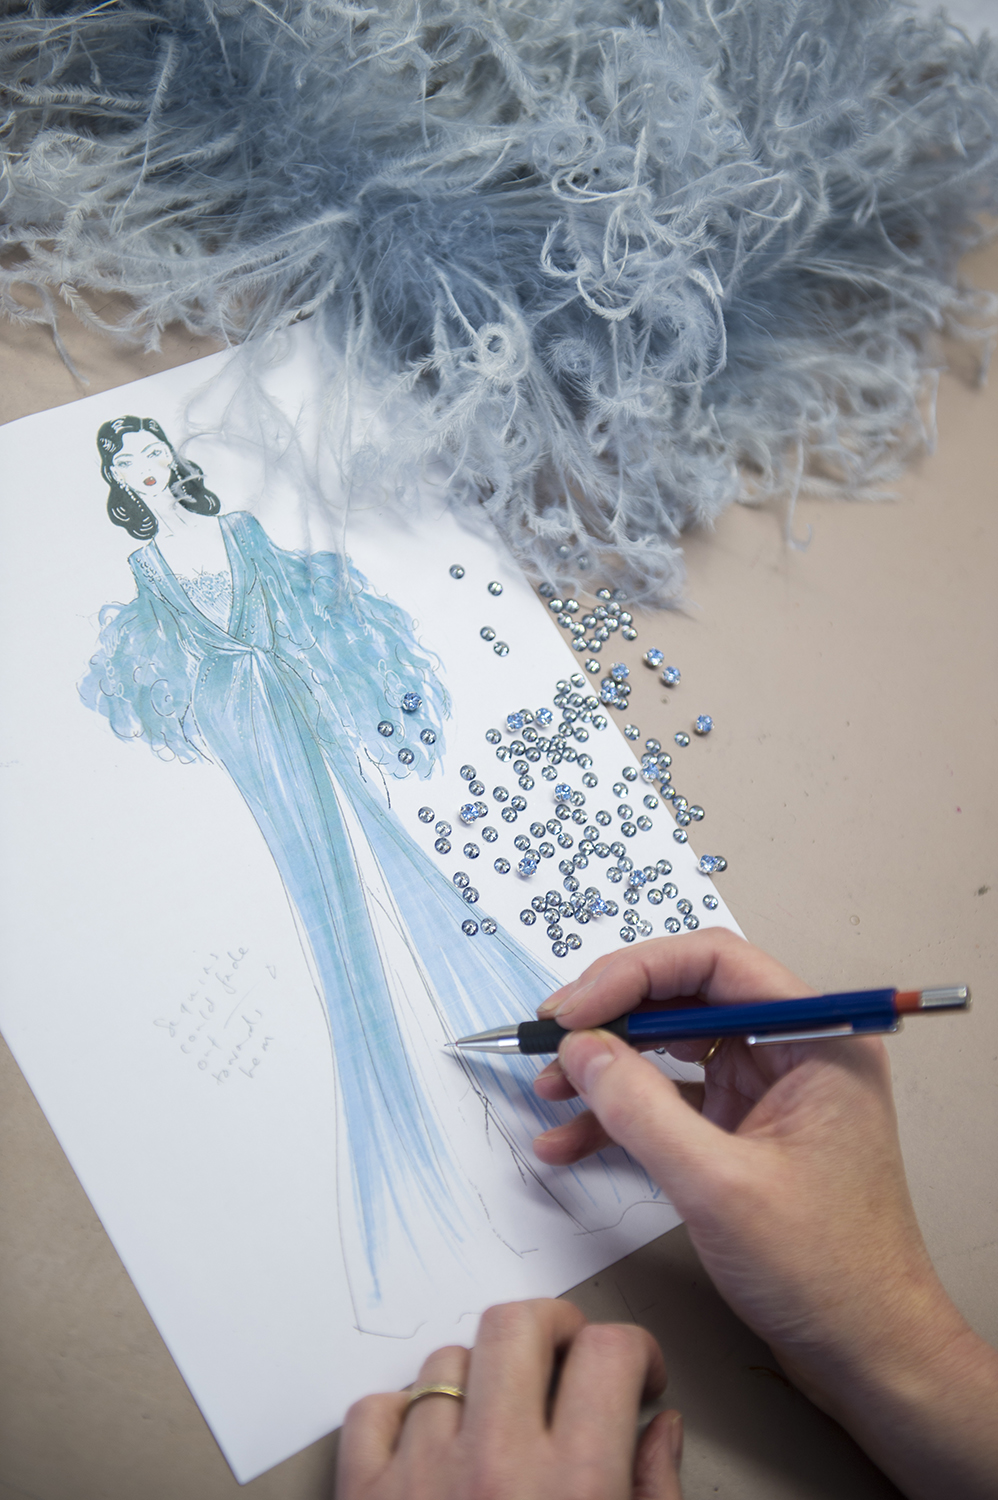 Jenny Packham sketch of Dita von Teese costume